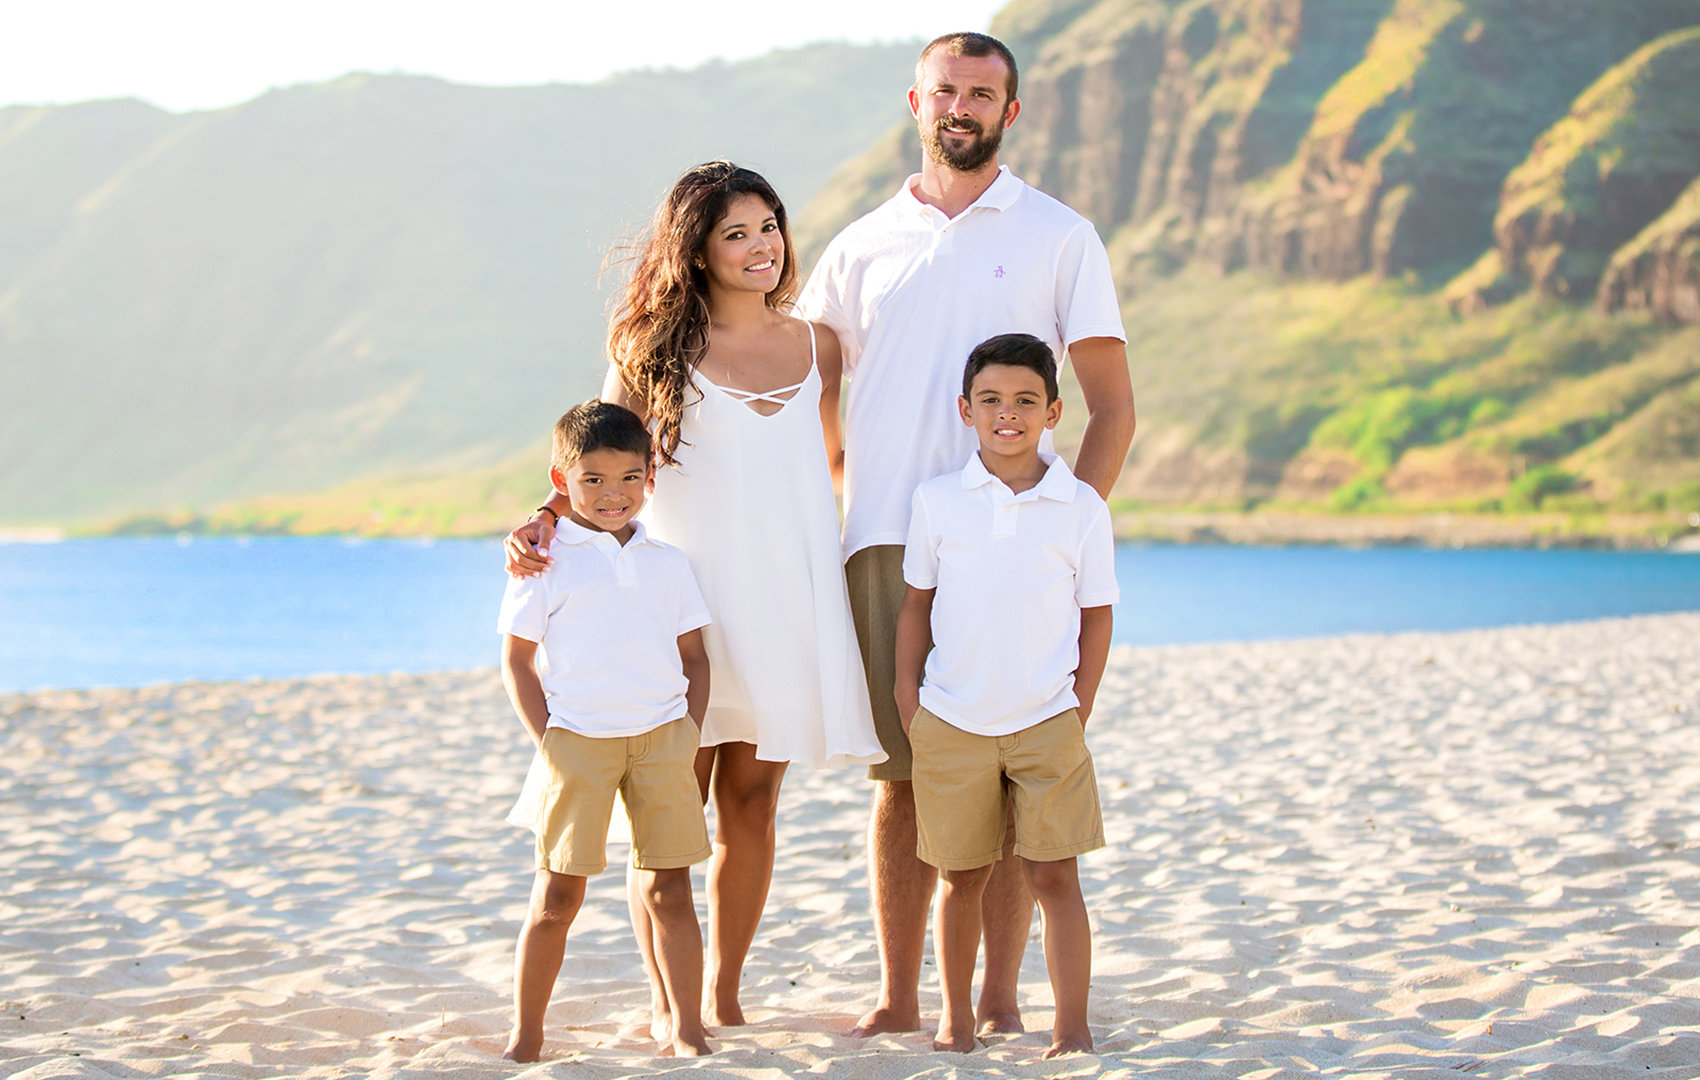 Maui family photographers | Kauai family photographers |  Oahu family photographers | Big Island family photographers